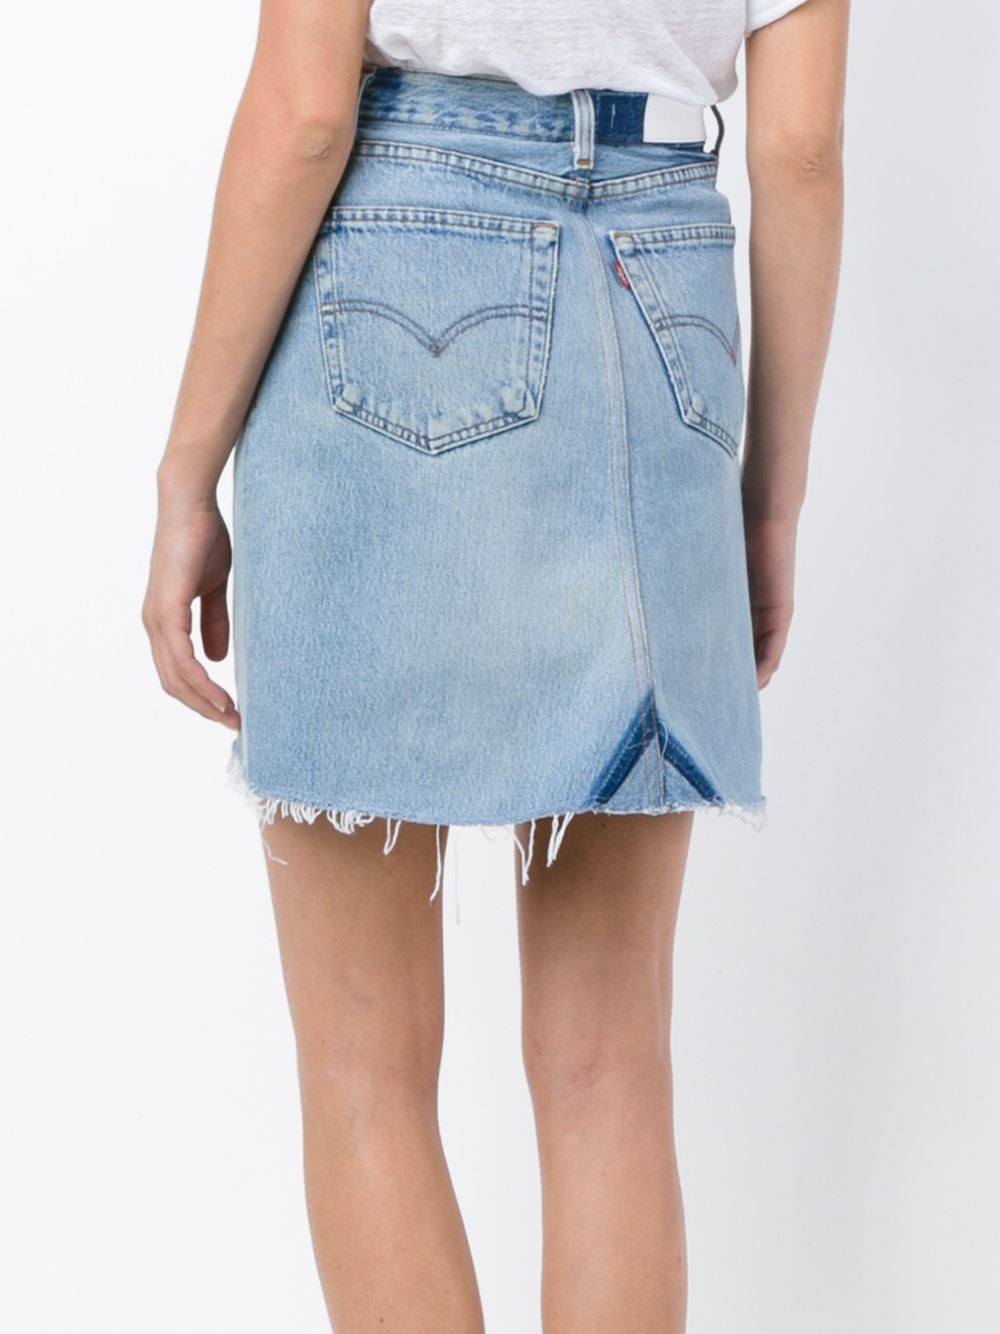 The denim skirt offers a classic casual counterpoint to your athletic tees and raglans to create a look that's all-American and perfect for casual hangouts. If you like a short-to-mid-thigh length hemline, you'll also enjoy everyday and shift dresses.